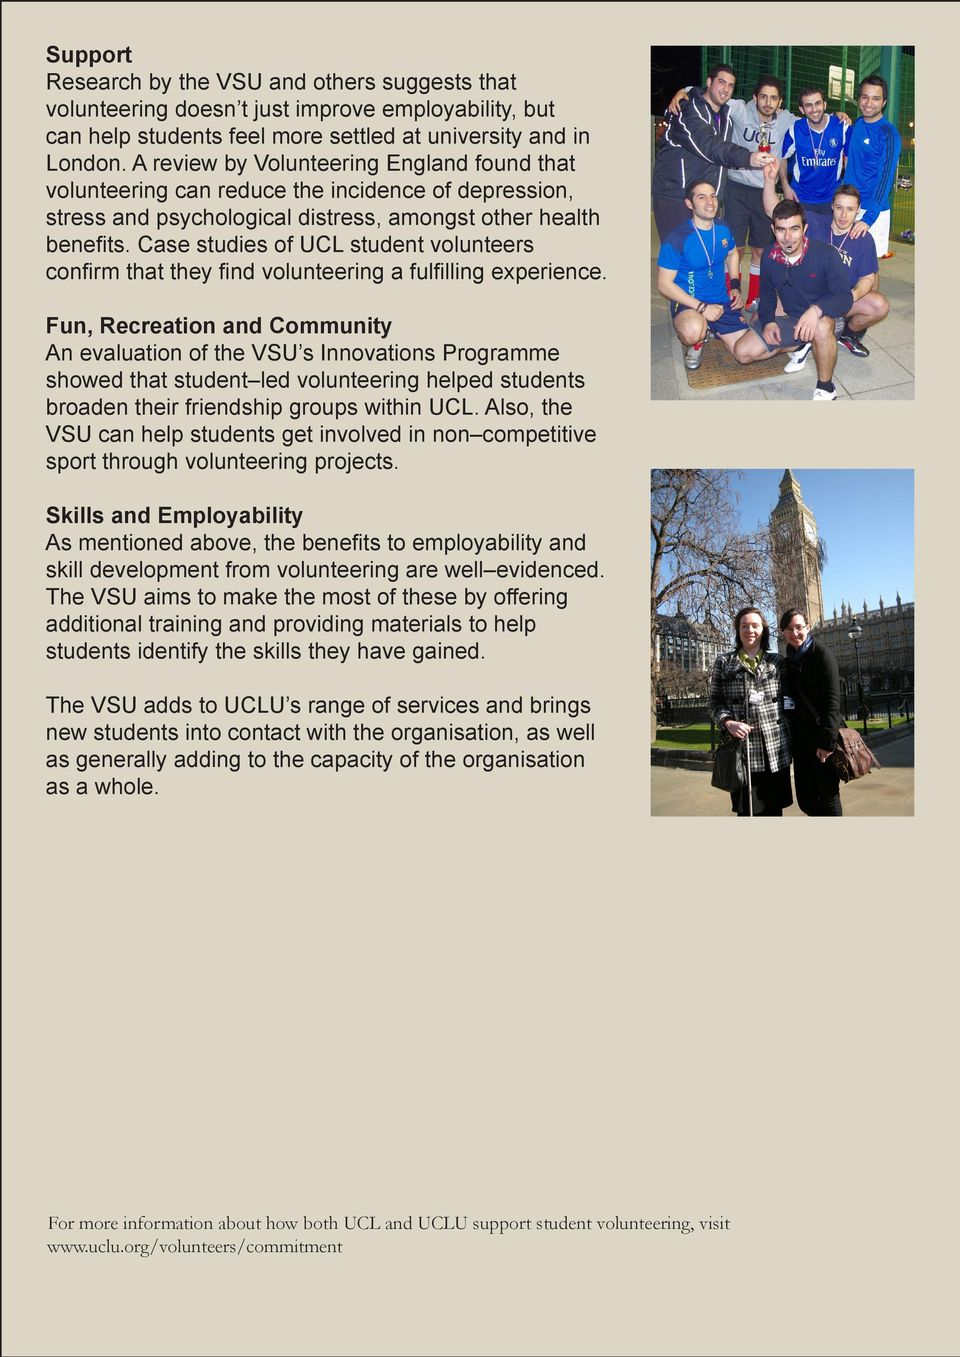 Case studies of UCL student volunteers confirm that they find volunteering a fulfilling experience.